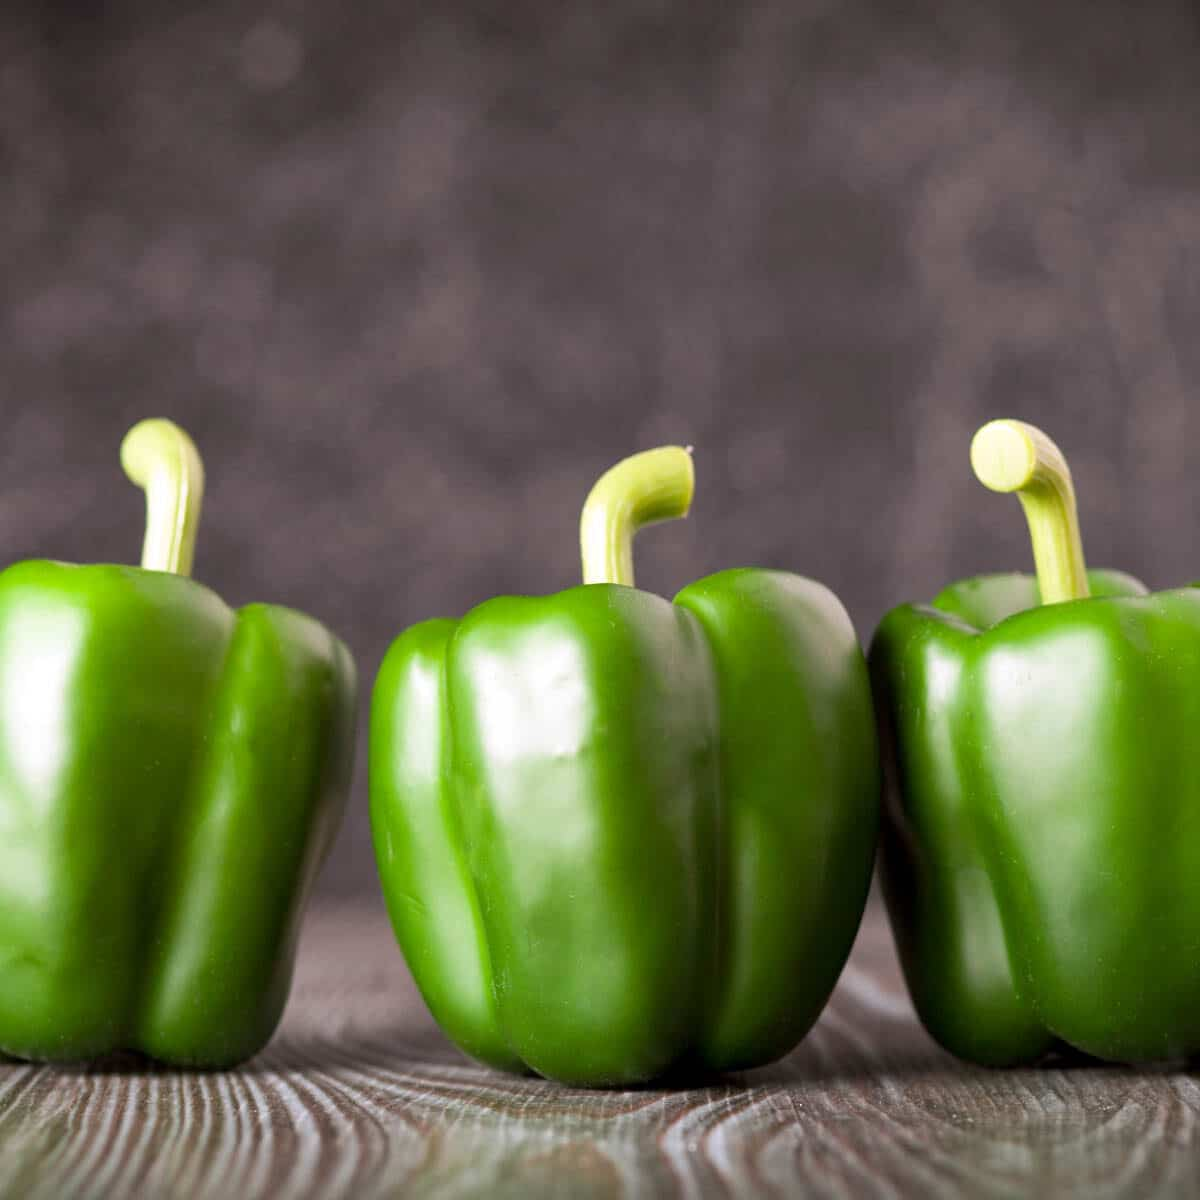 3 whole green bell peppers lined up